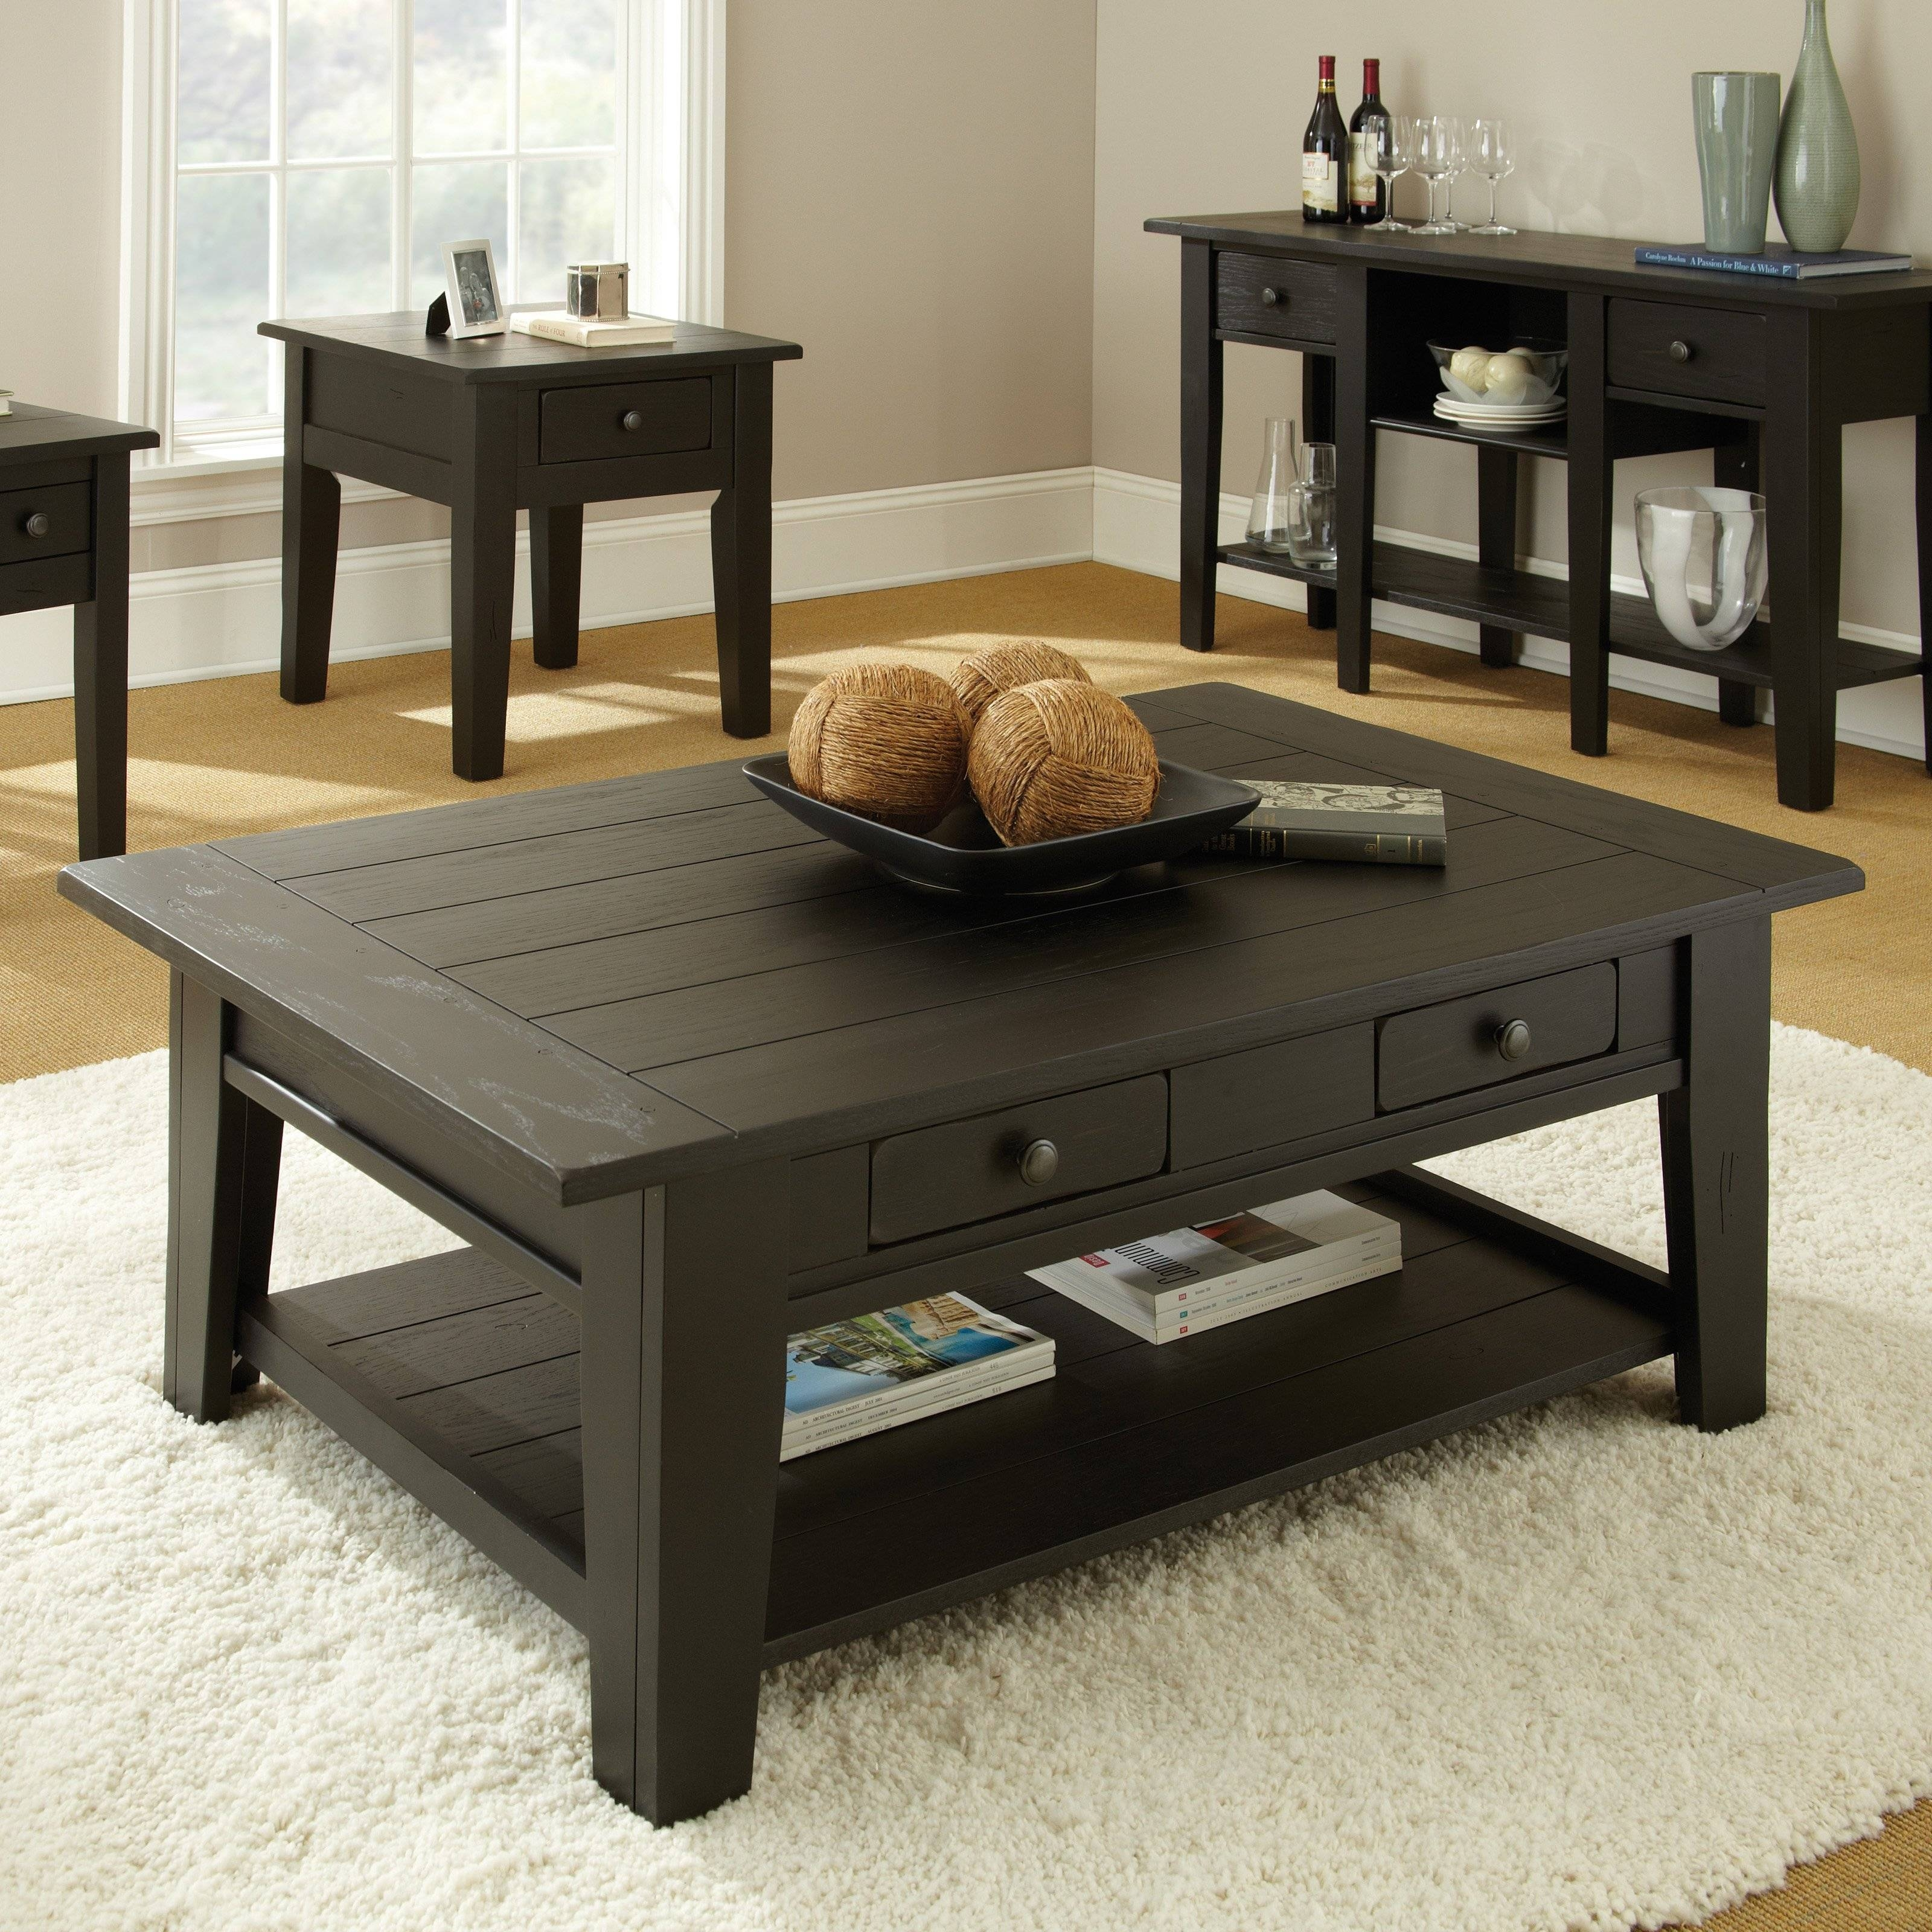 Steve Silver Liberty Rectangle Oak Wood Coffee Table – Coffee In Small Coffee Tables With Shelf (View 28 of 30)